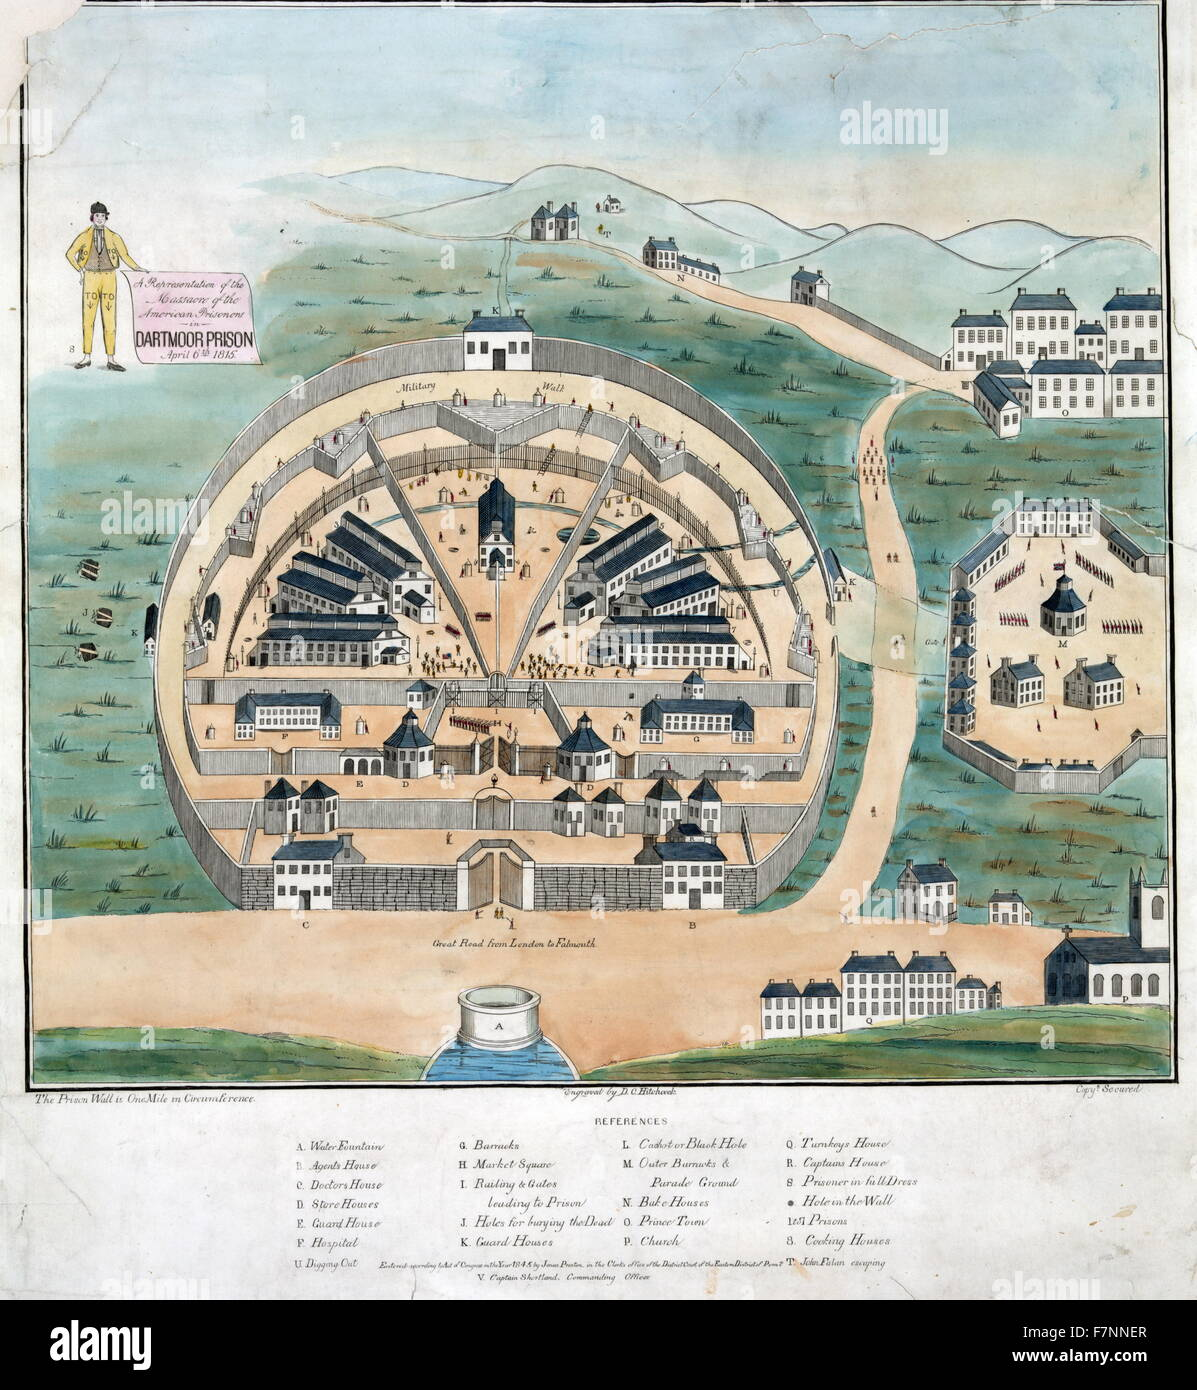 A representation of the massacre of American prisoners in Dartmoor Prison, April 6, 1815. Print shows Dartmoor Prison - Stock Image